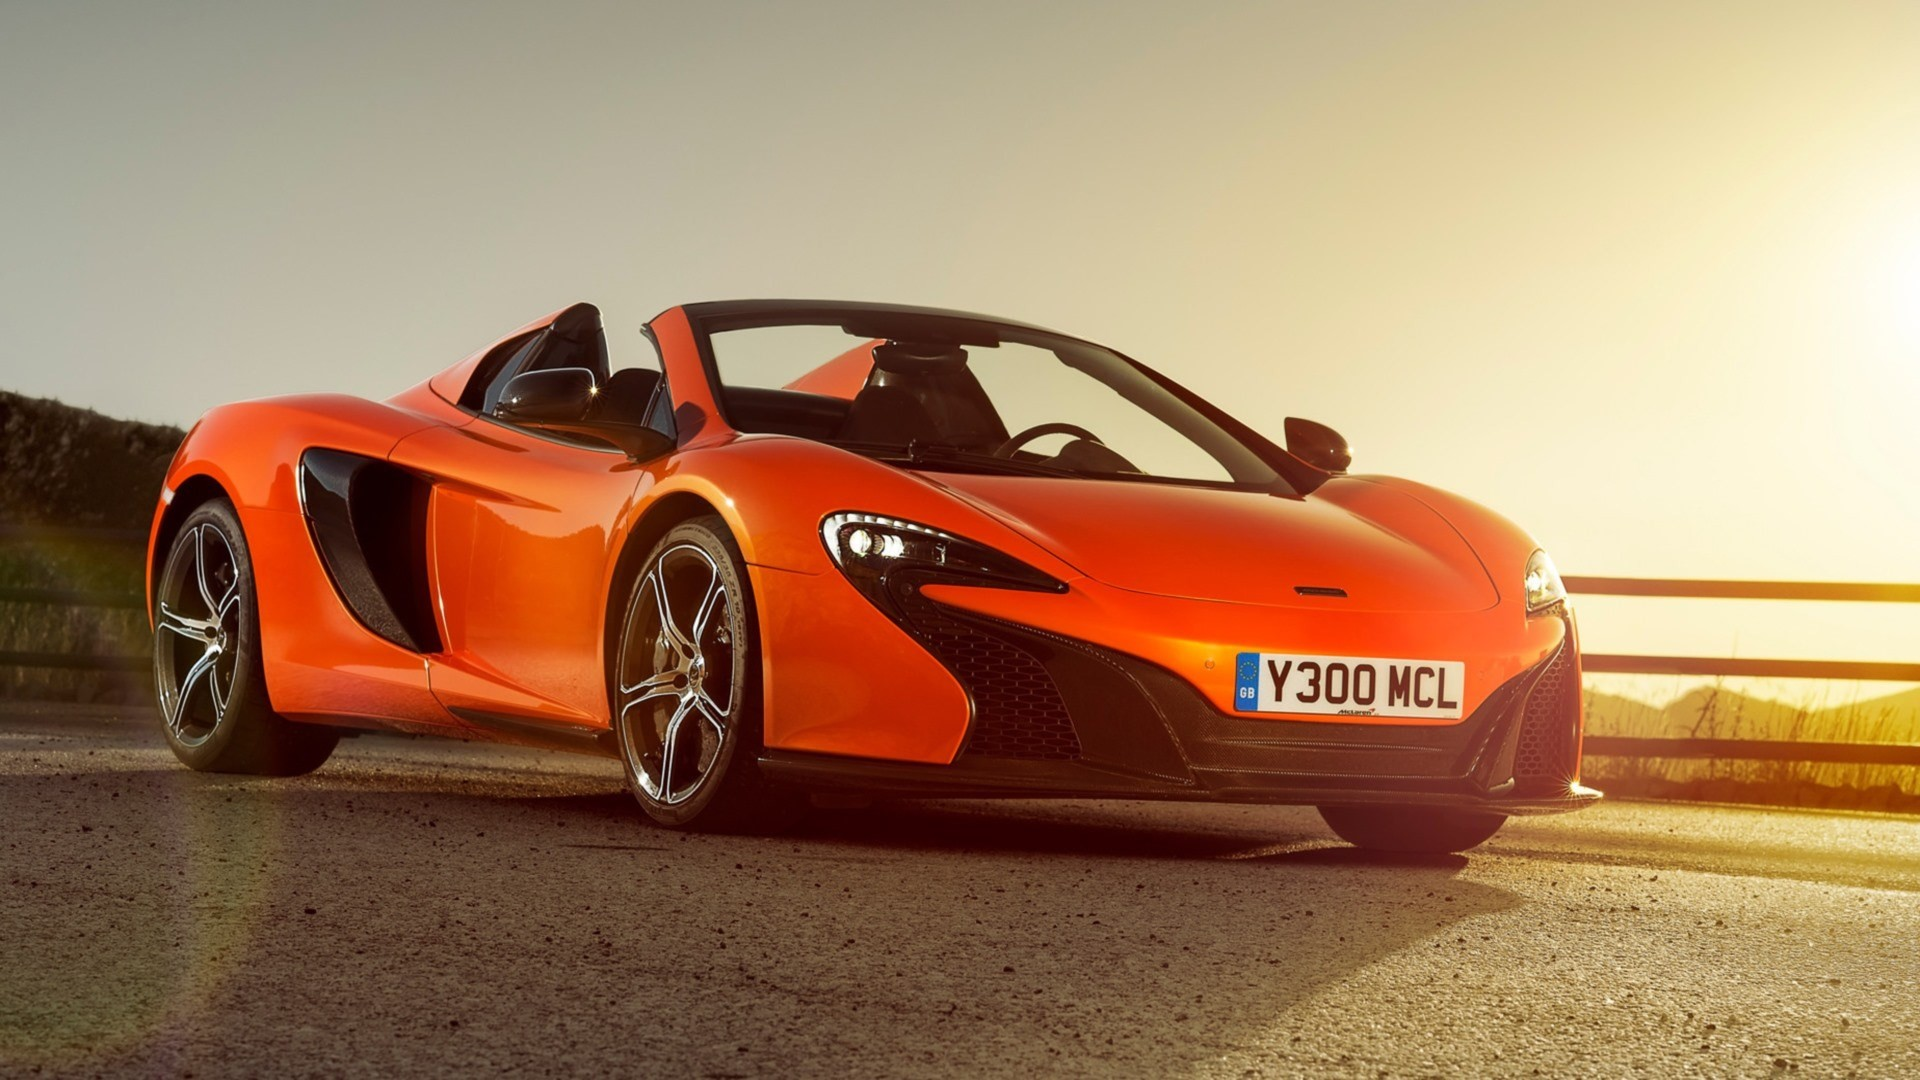 1920x1080 Hd widescreen wallpapers ·  free high resolution wallpaper mclaren  650s spider